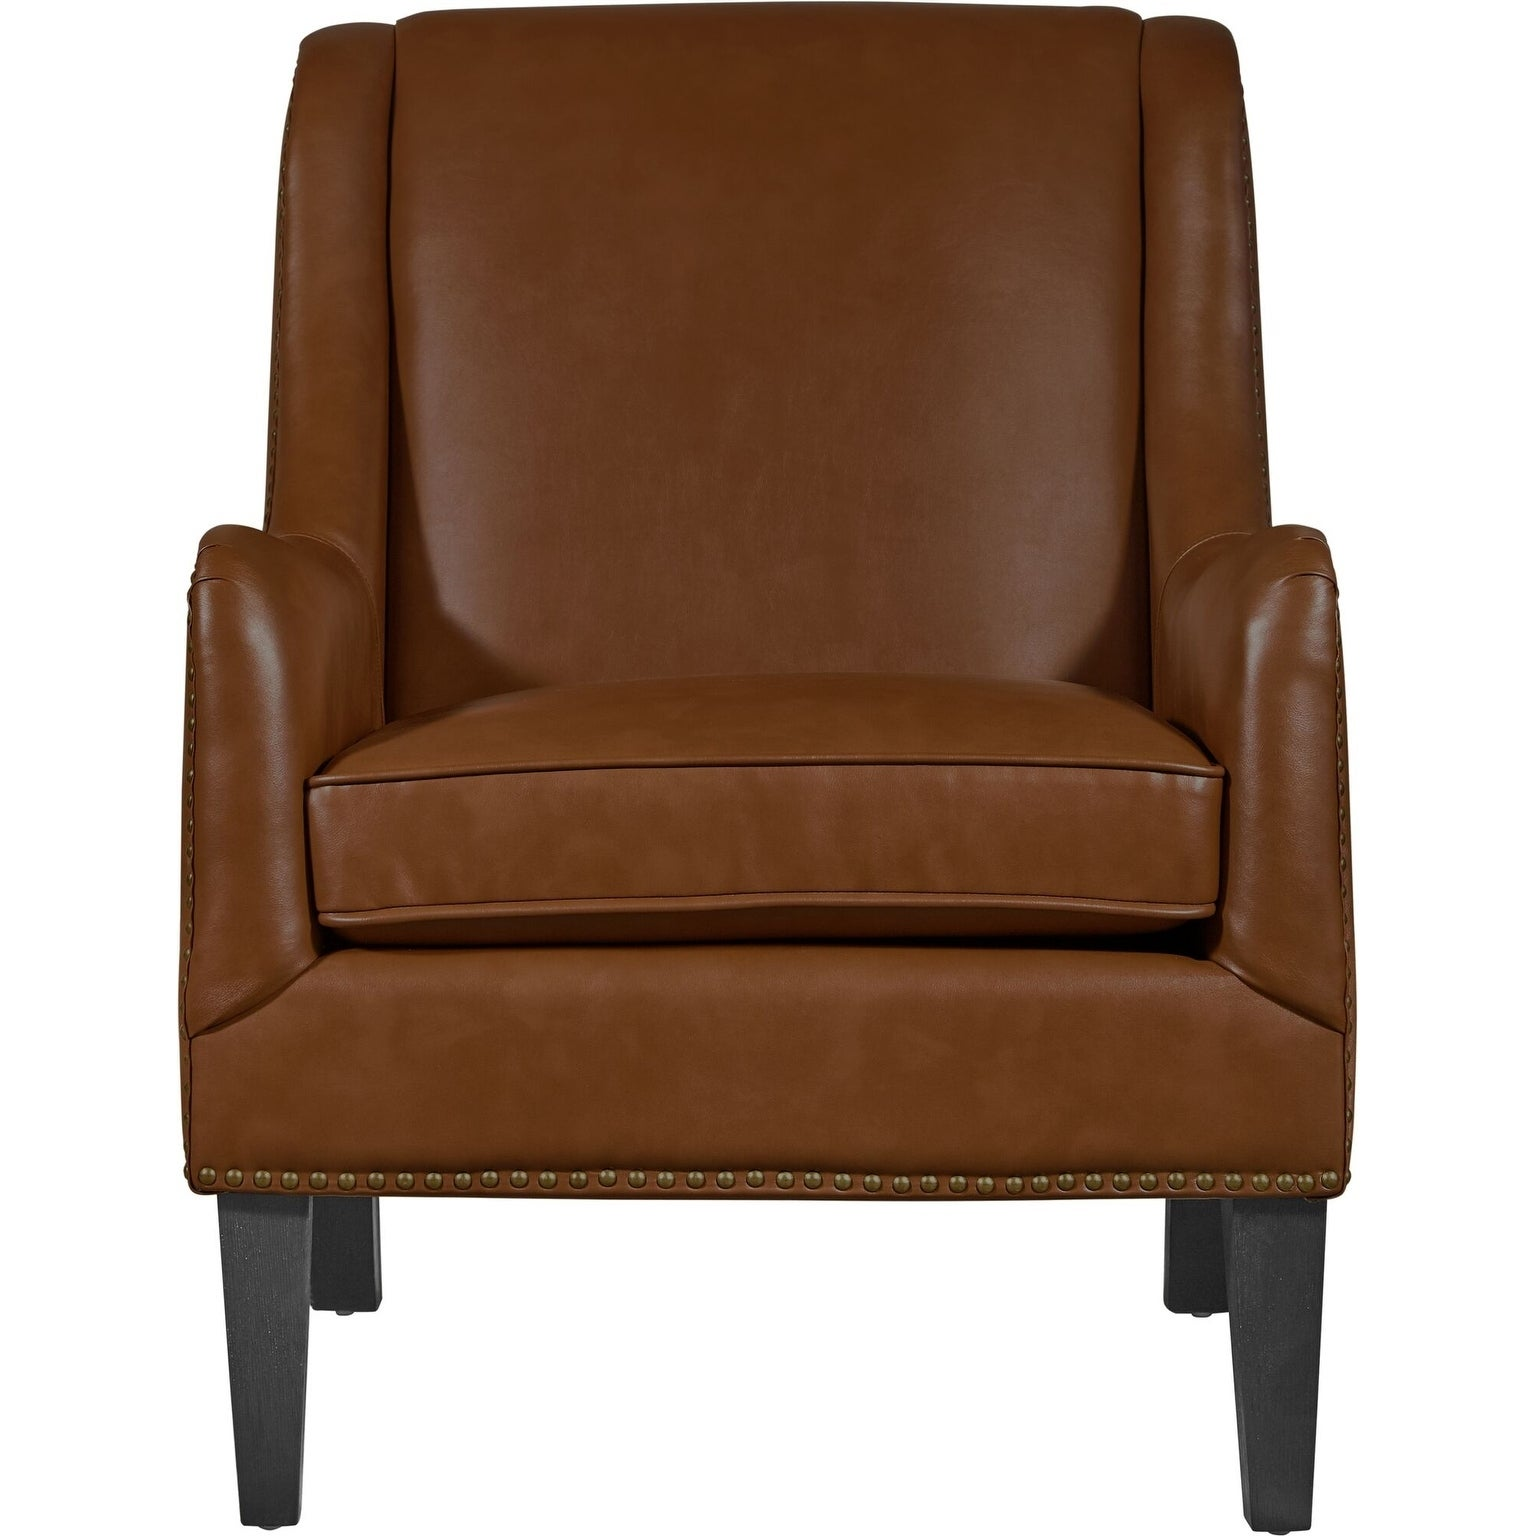 Enjoyable Chair Tommy Hilfiger Accent Chair Machost Co Dining Chair Design Ideas Machostcouk